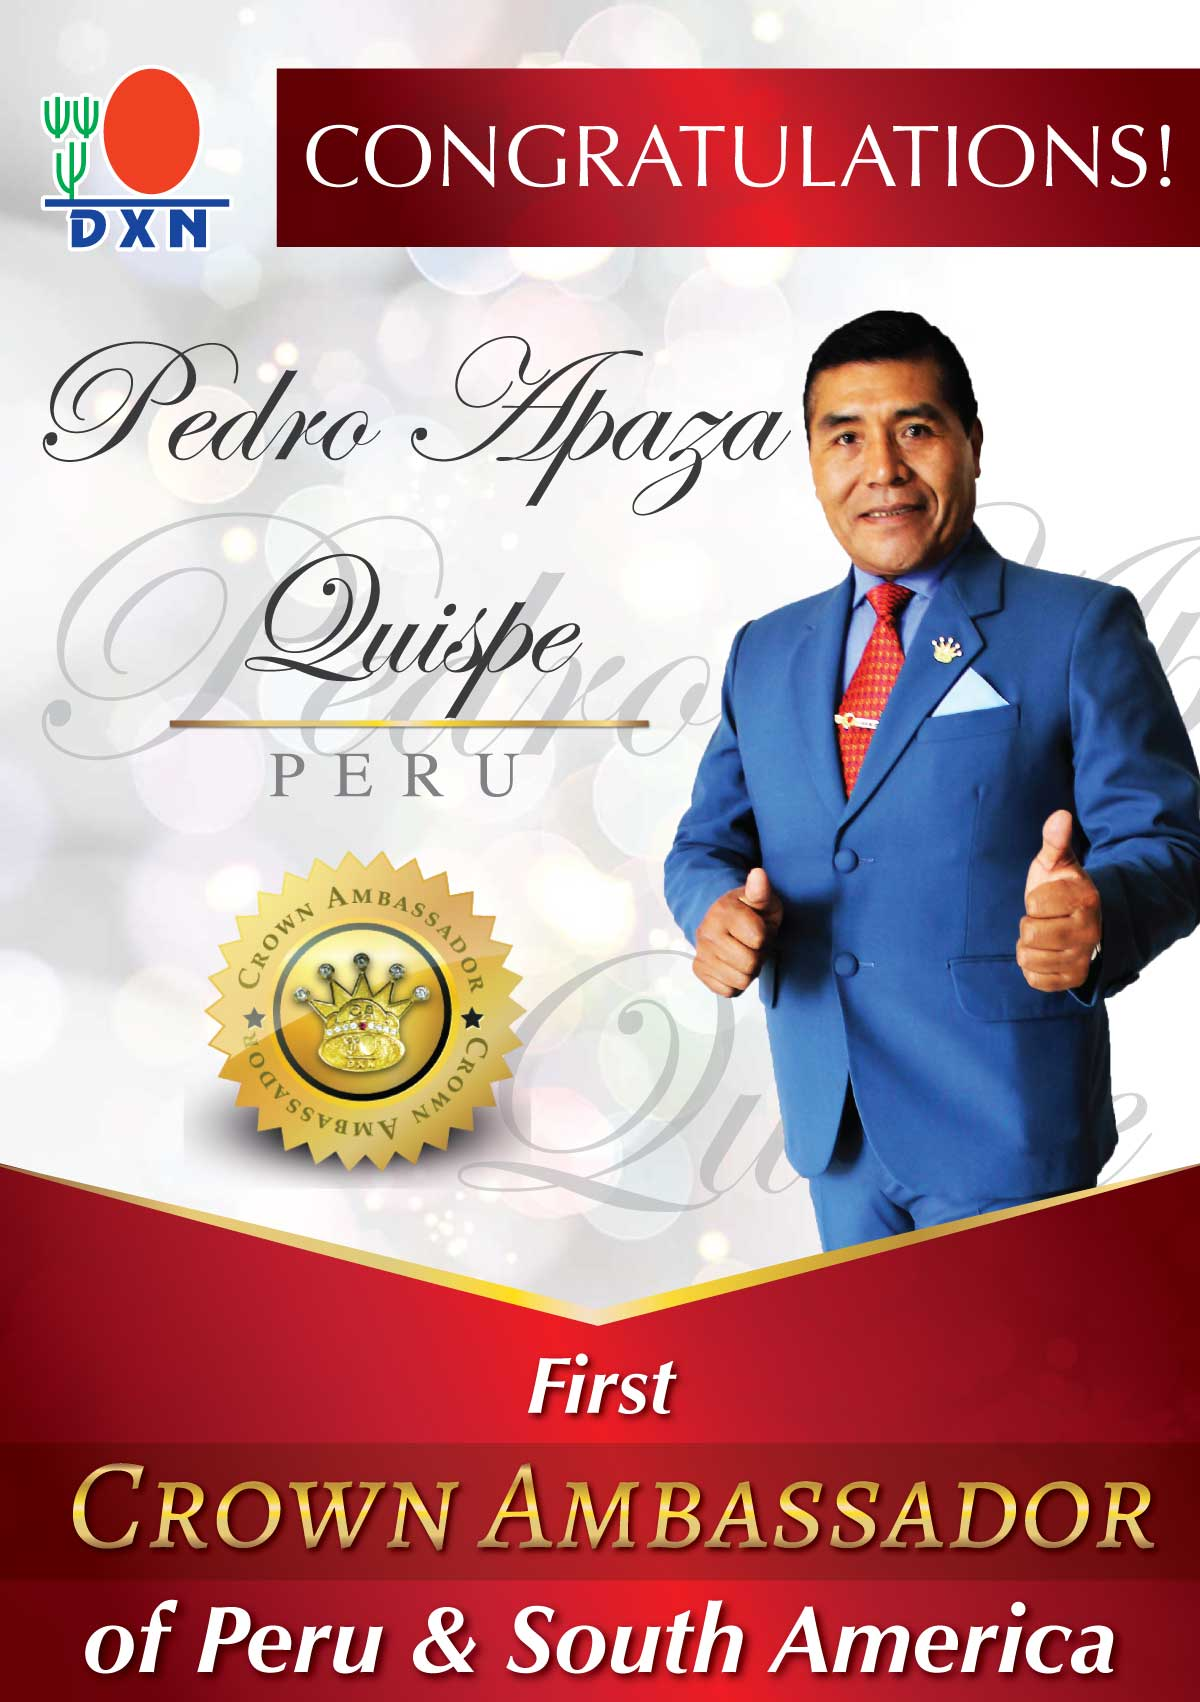 <h4>Congratulations Pedro Apaza Quispe First Crown Ambassador of Peru and South America!</h4> <p><em><strong>Congratulations Pedro Apaza Quispe First Crown Ambassador of Peru and South America!</strong></em></p>